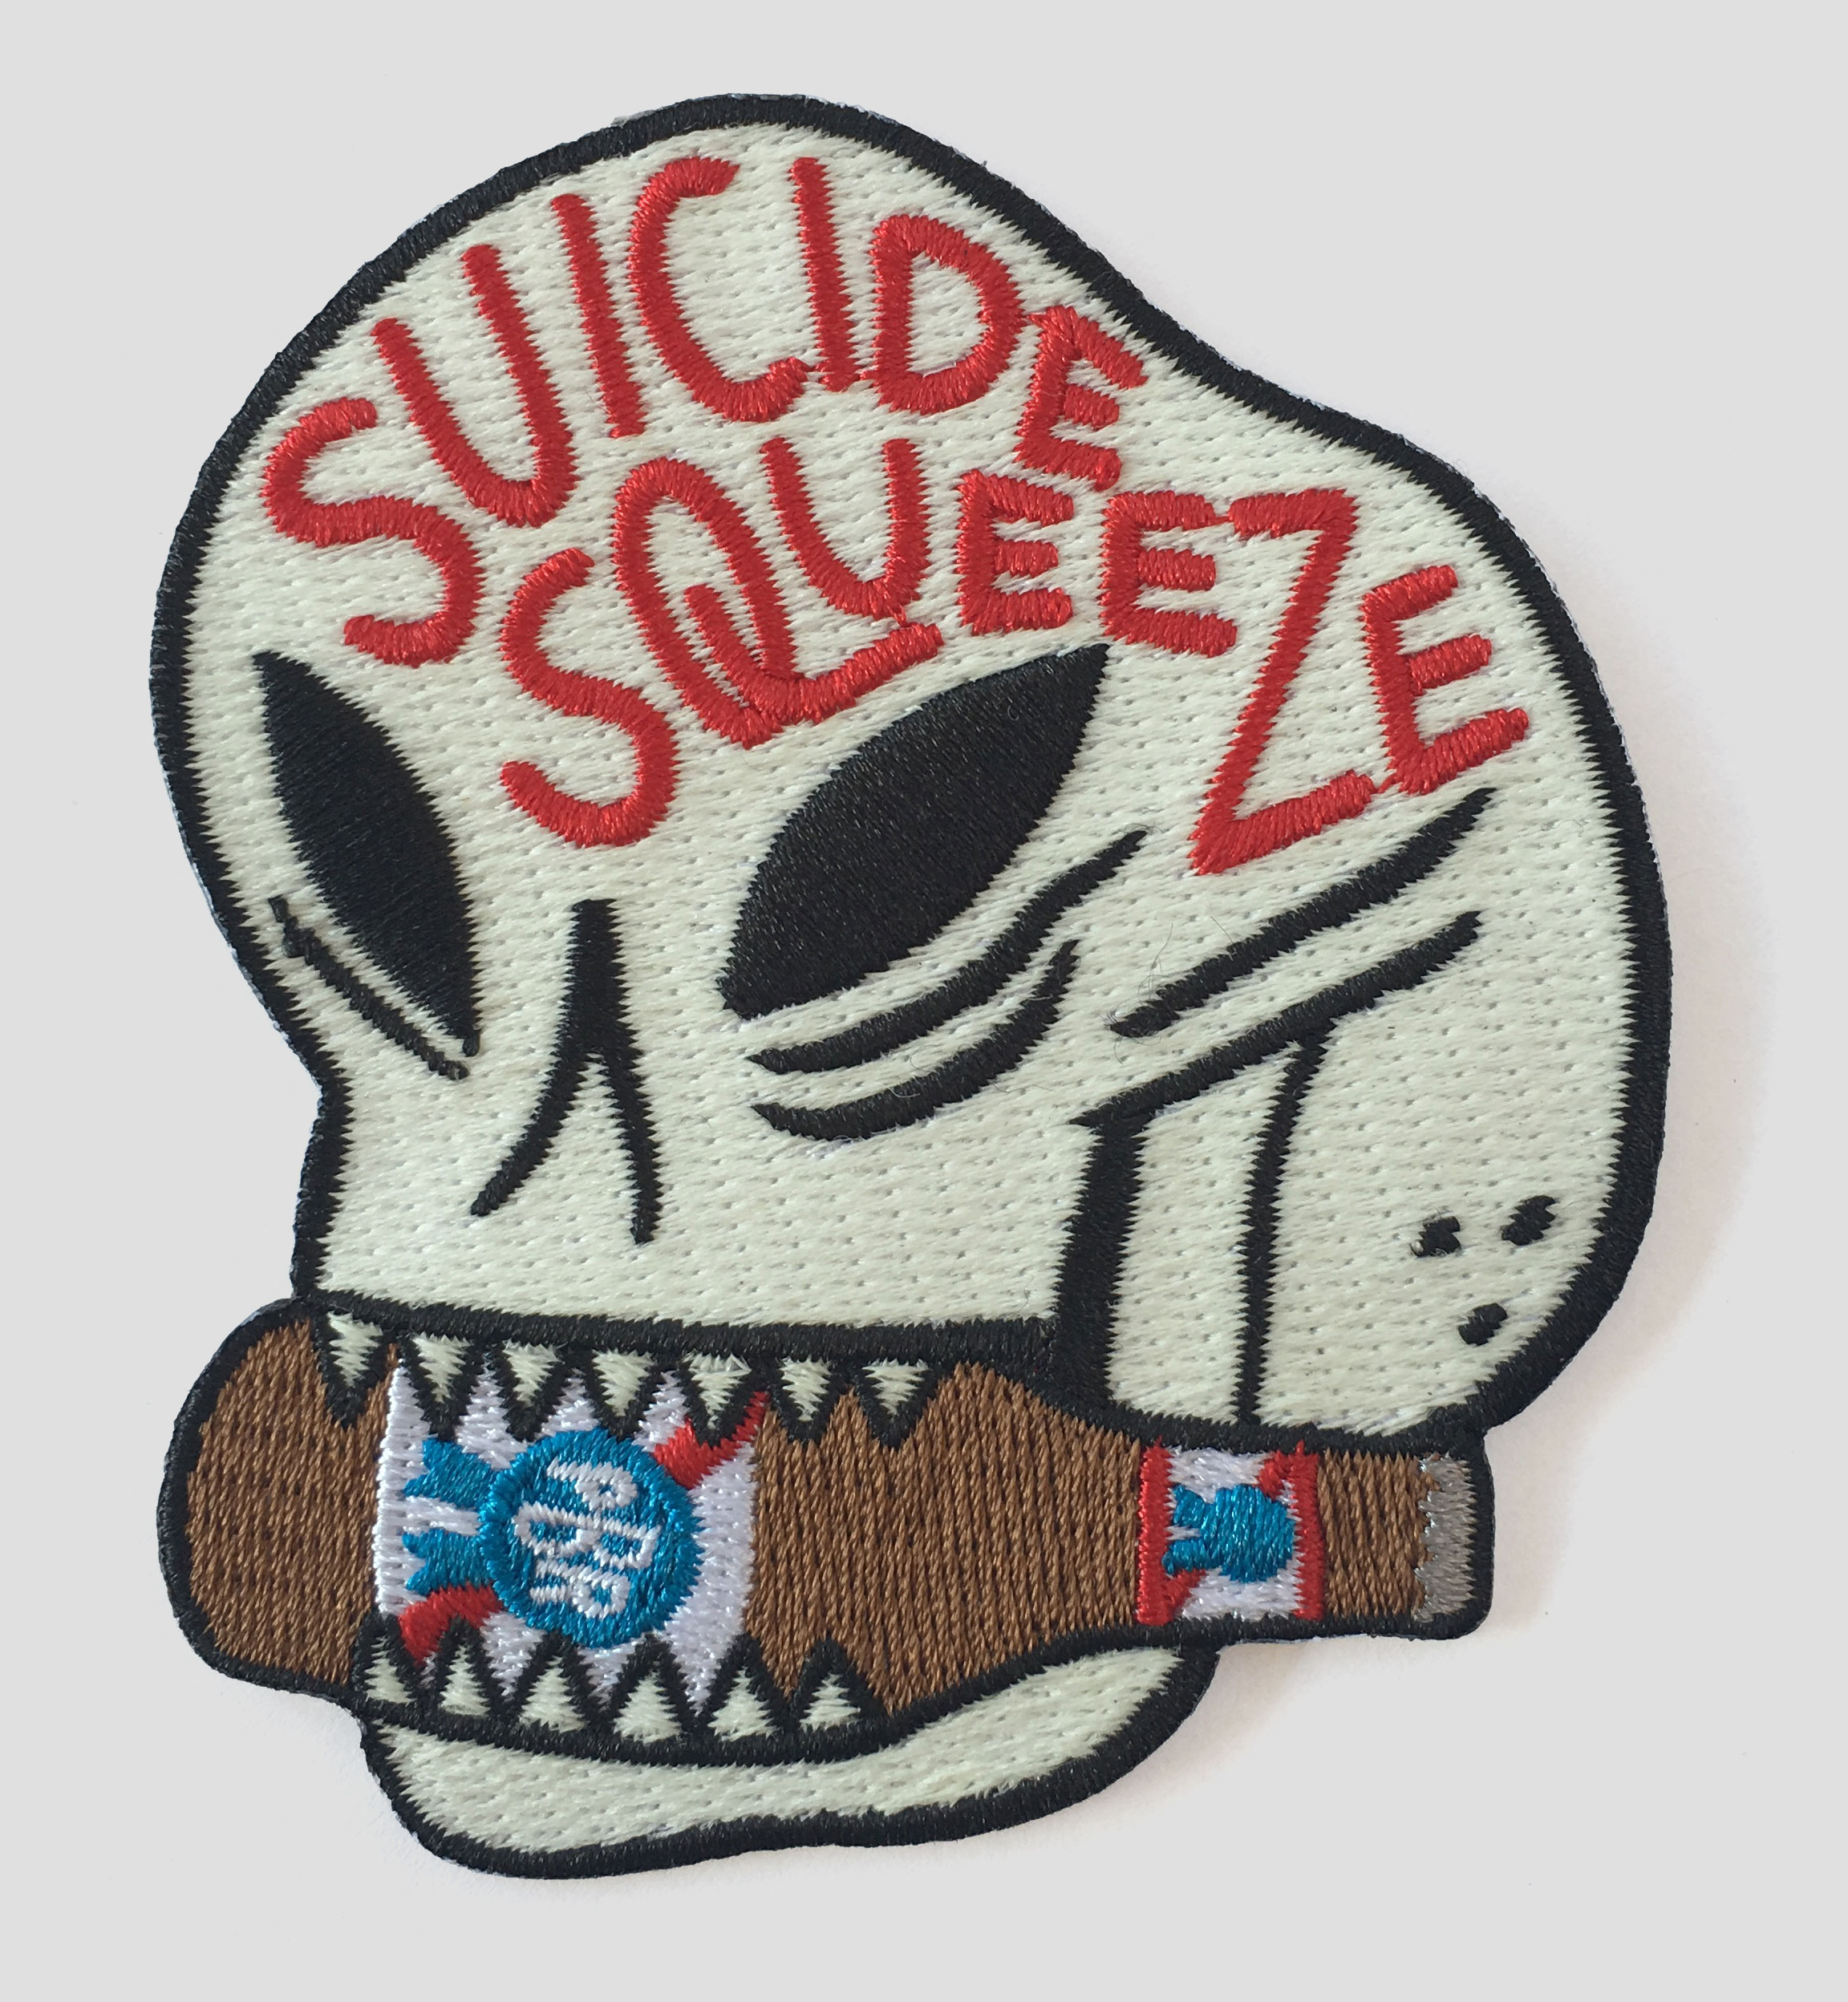 Embroidered patch sponsored by Pabst Blue Ribbon